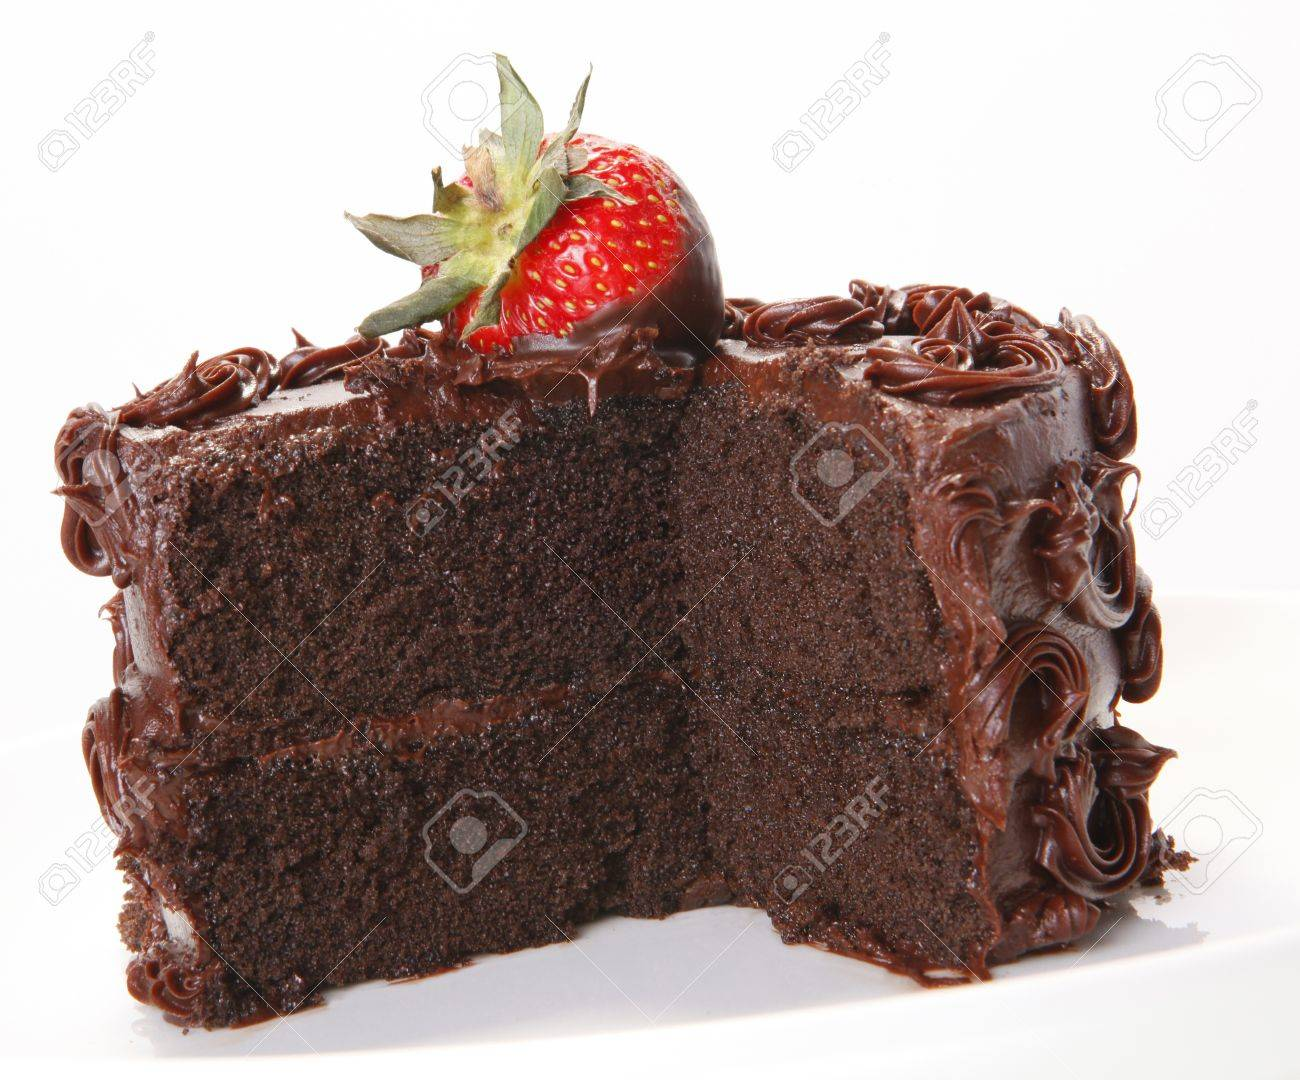 Strawberry Topped Chocolate Sponge Cake Stock Photo, Picture And ...